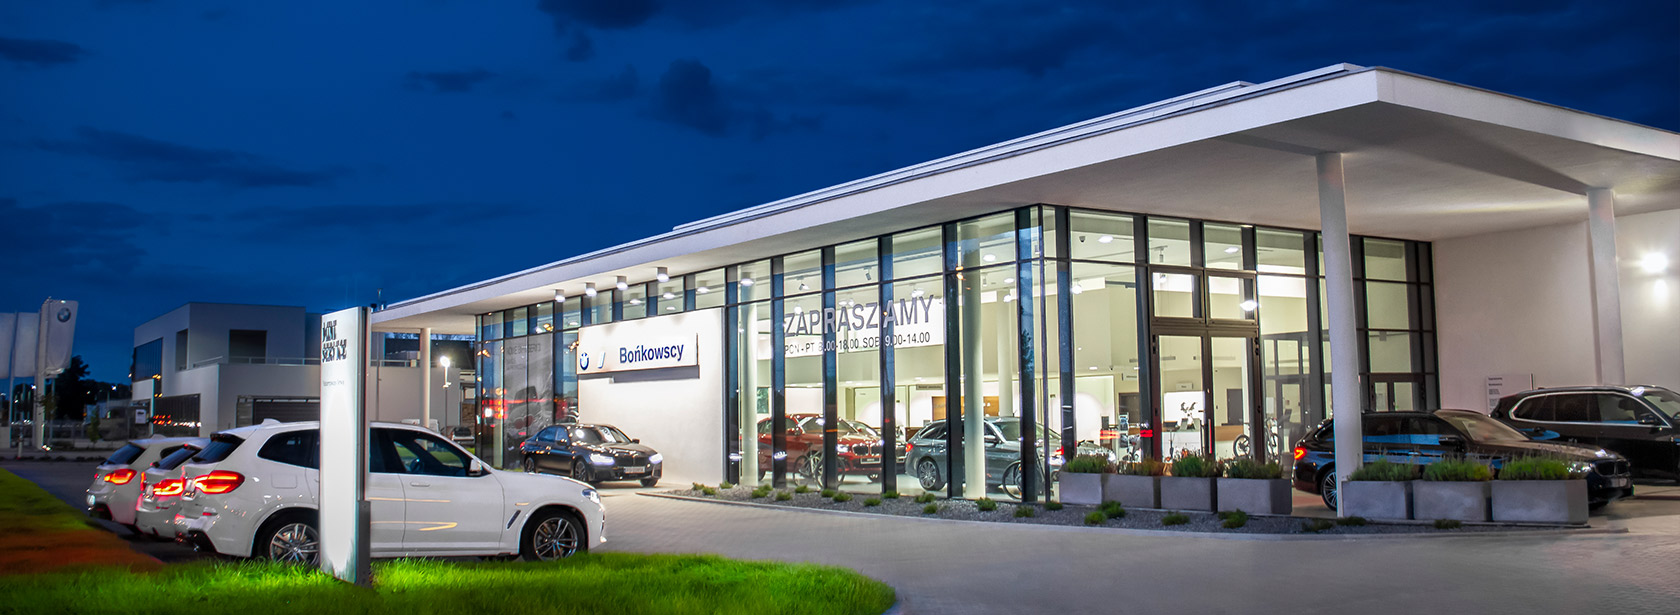 Salon Dealer BMW Bońkowscy.